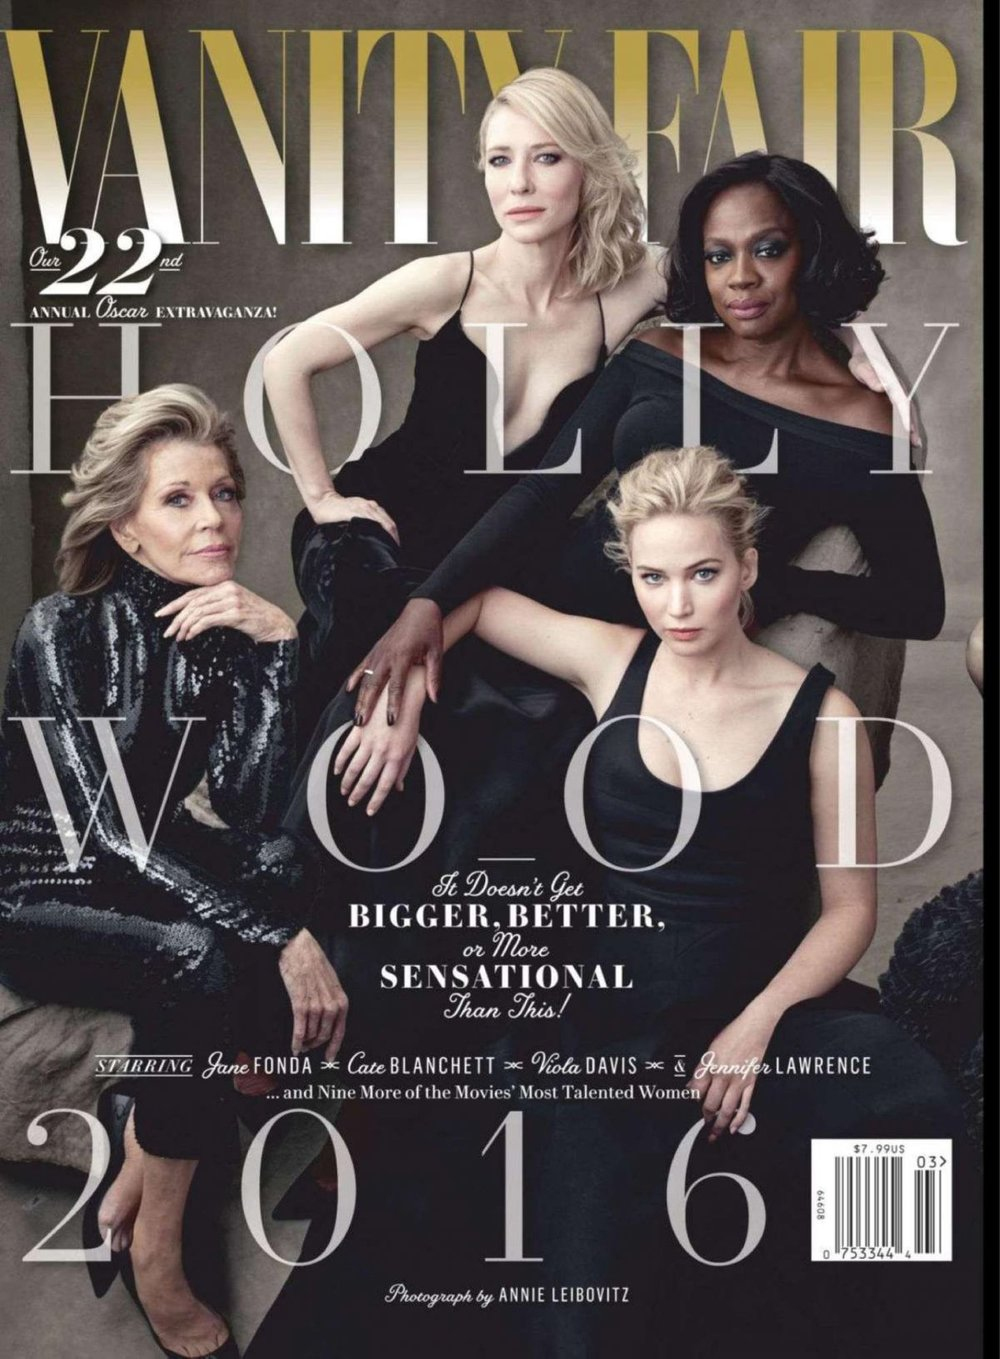 jennifer-lawrence-cate-blanchett-rachel-weisz-jane-fonda-and-viola-davis-in-vanity-fair-magazine-march-2016-issue_1.jpg